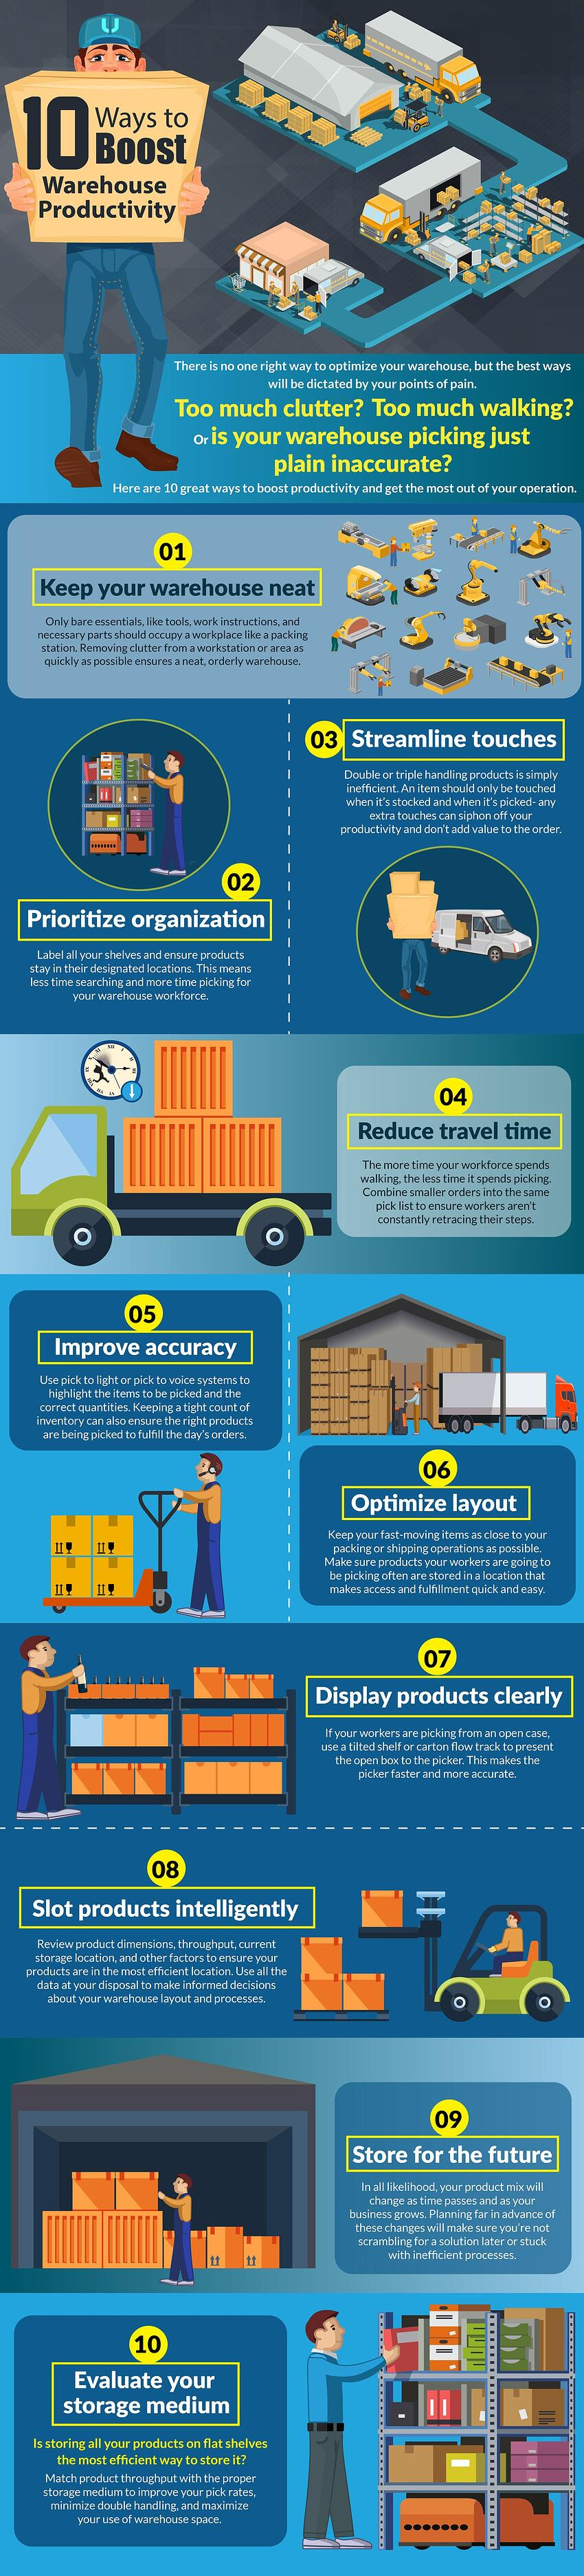 10-ways-to-boost-warehouse-productivity